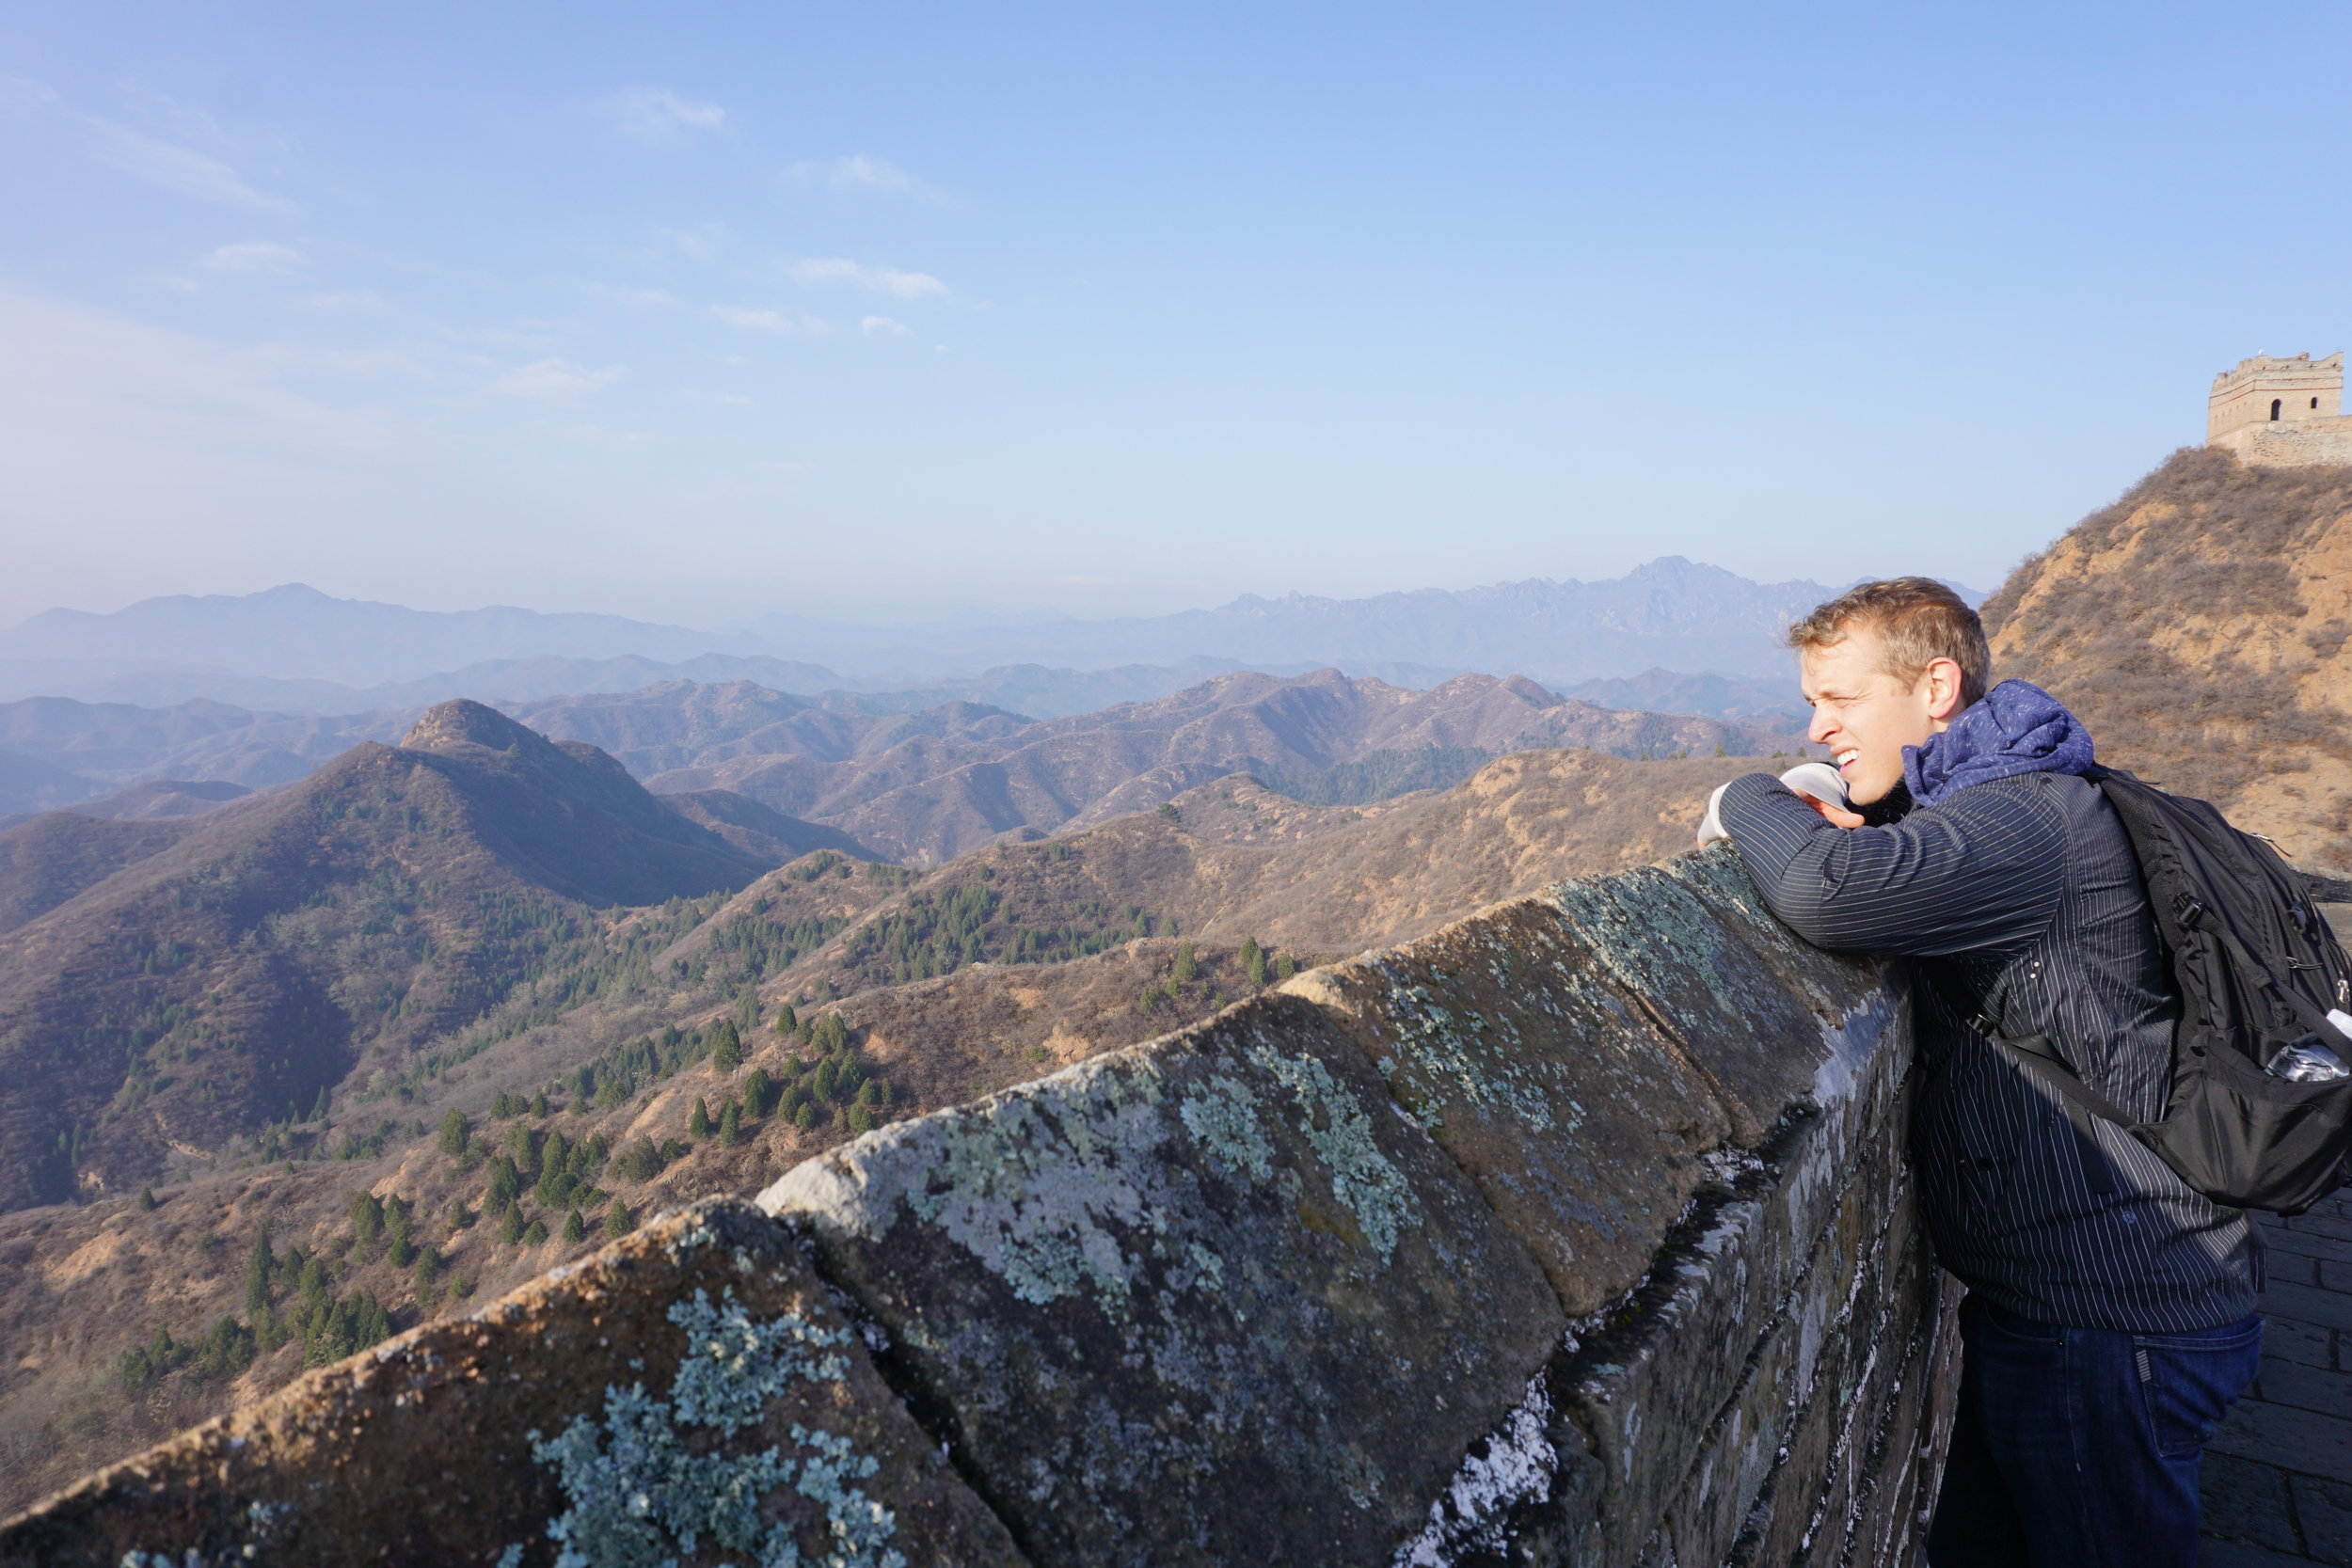 Viewing the Mountain Ranges